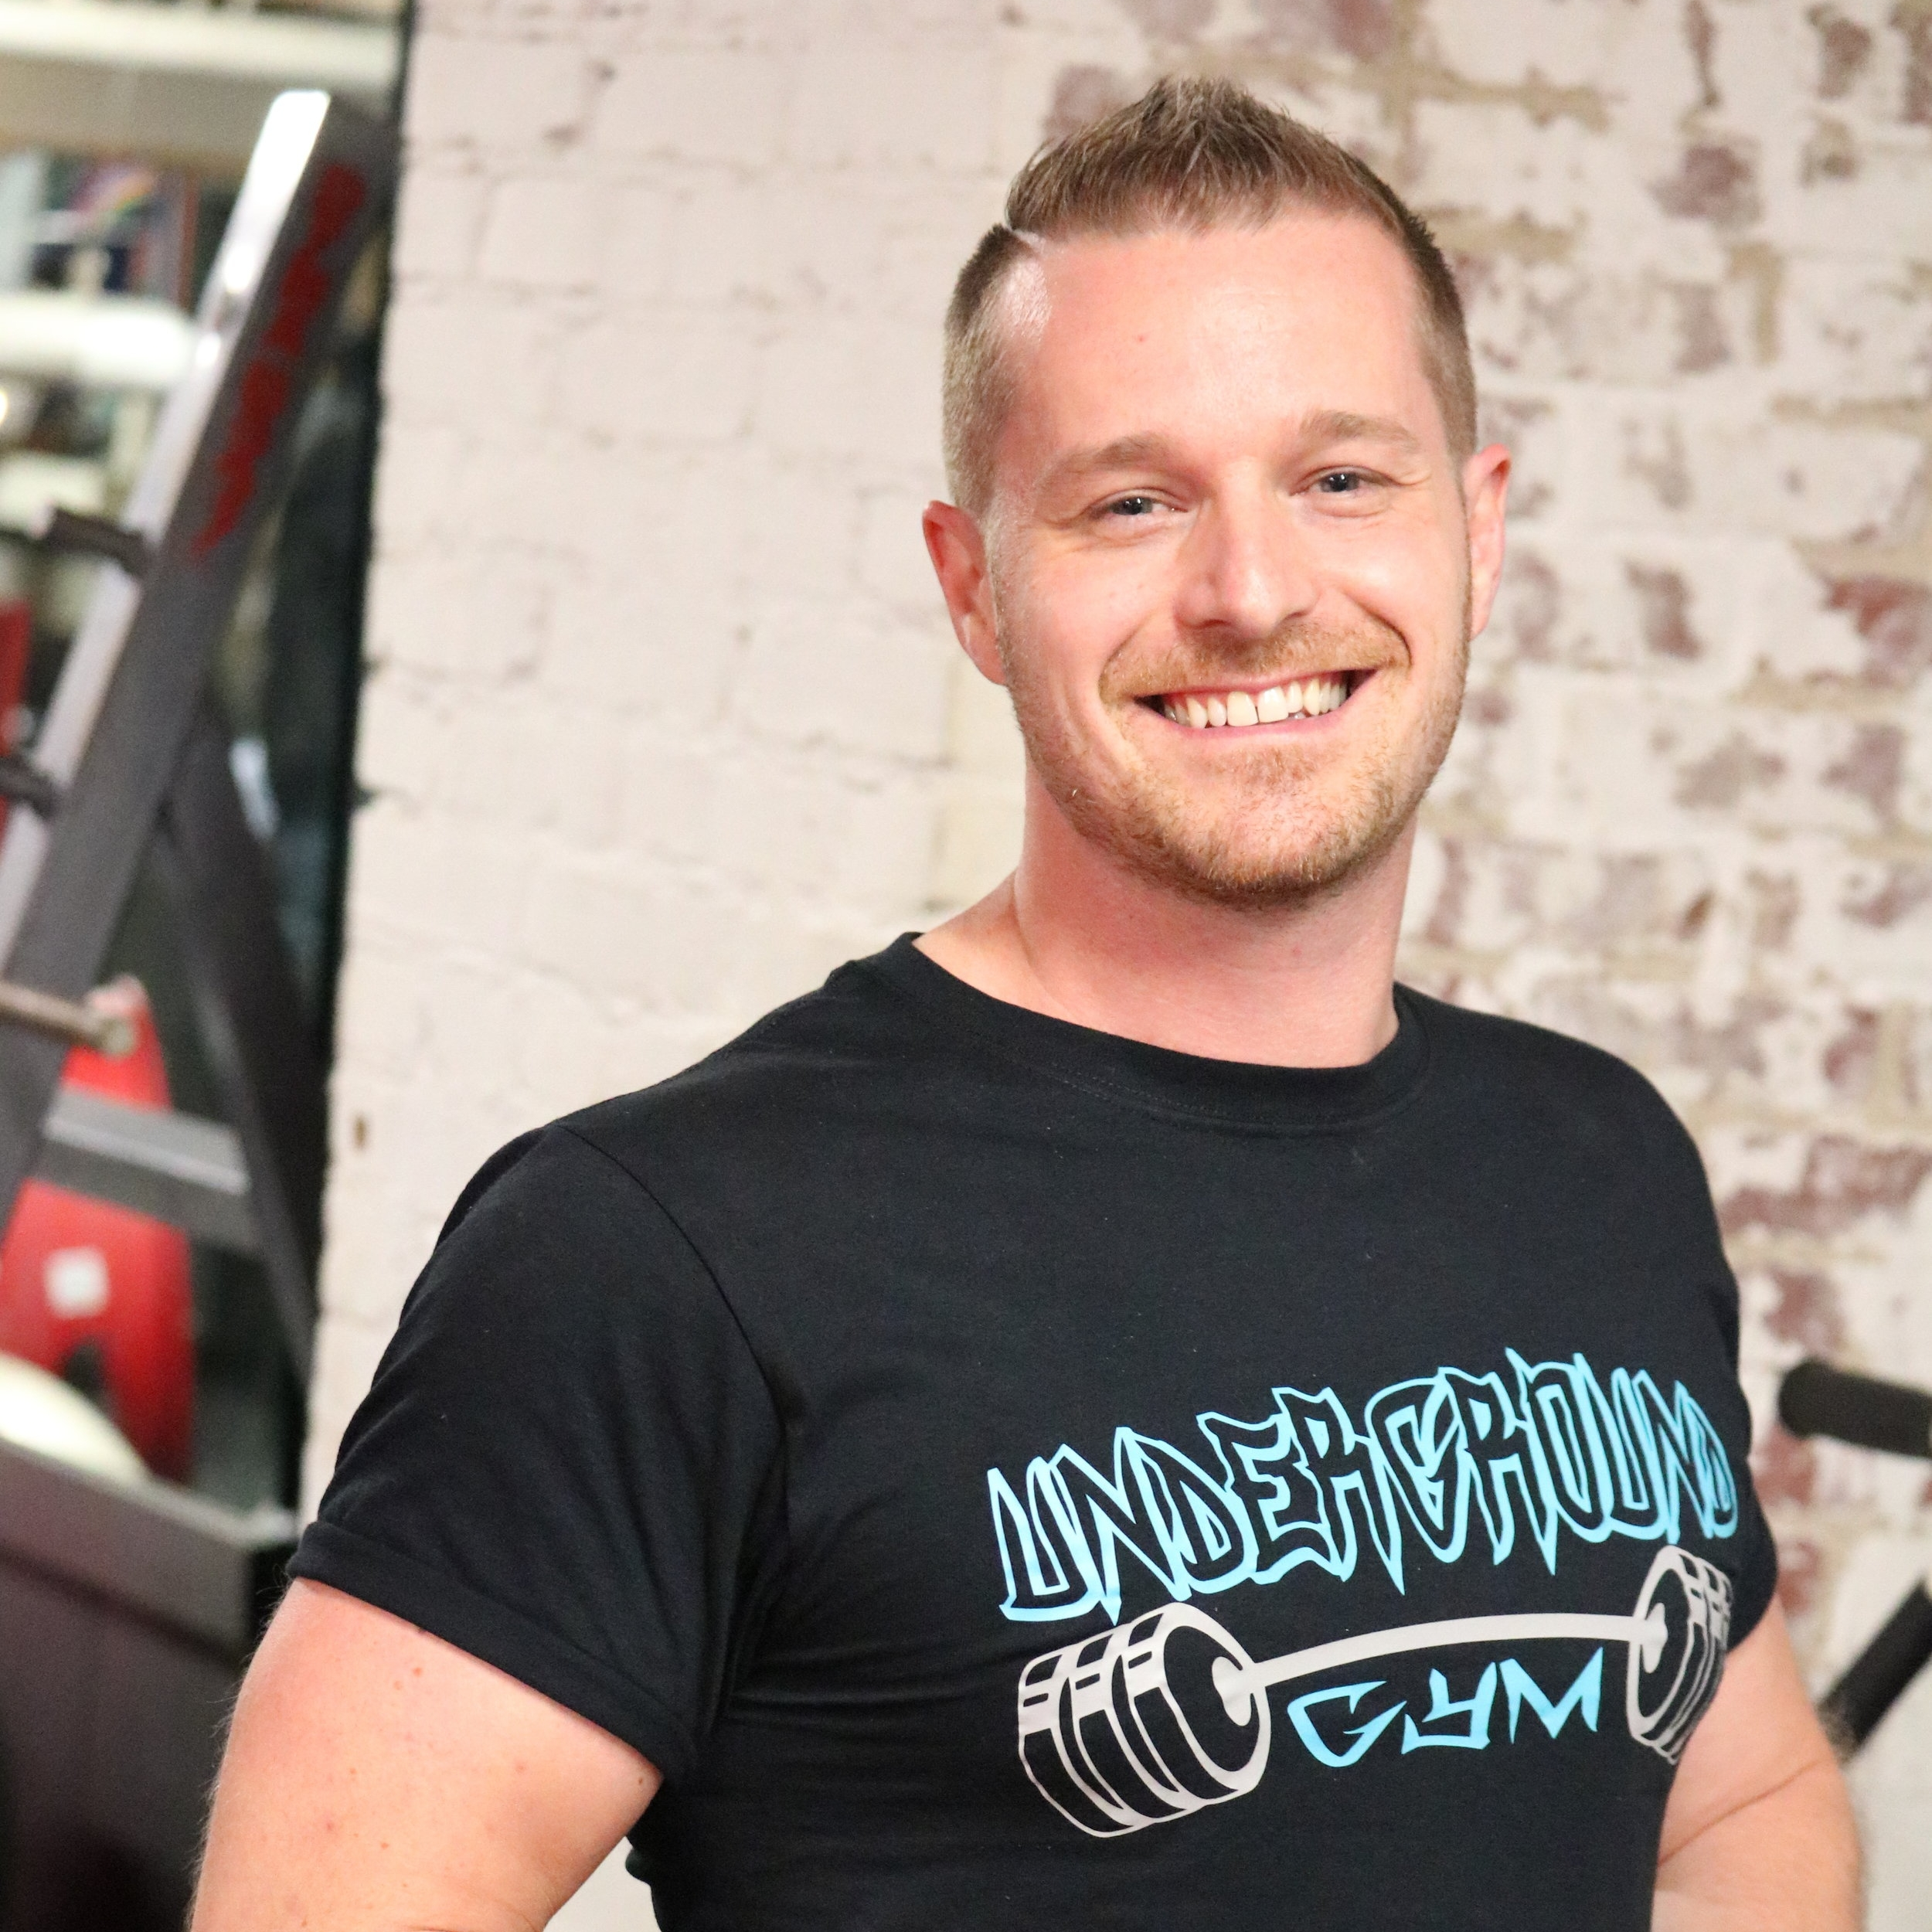 Jacob Foulk - Owner and Personal Trainer